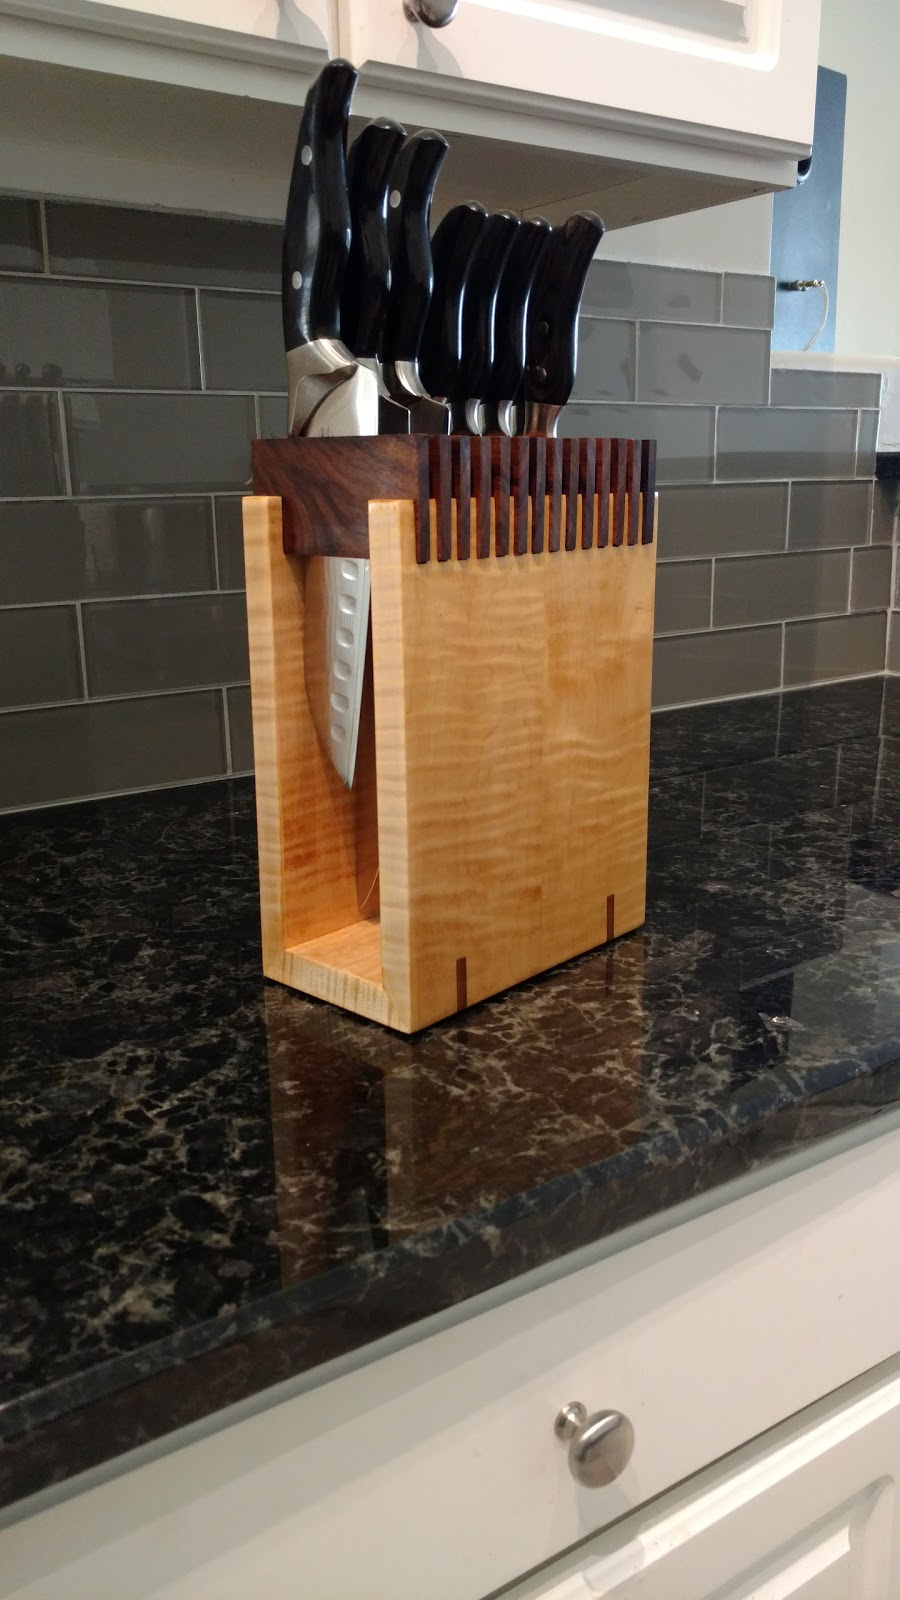 Justin S Wood Works Diy Walnut And Curly Maple Knife Block